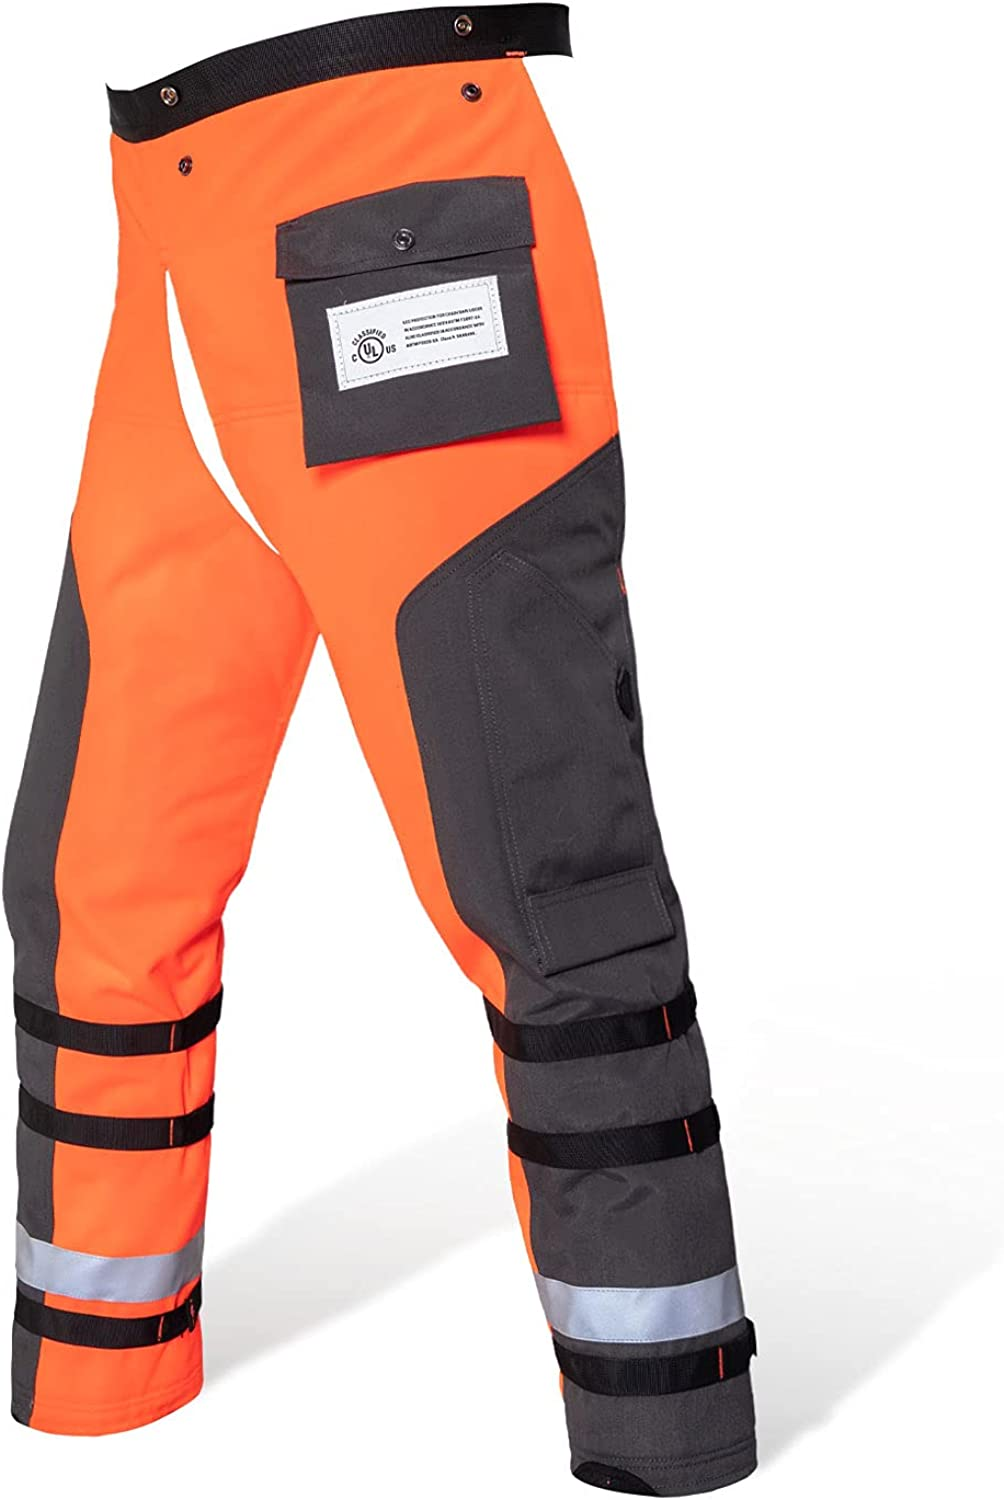 YARDMARIS Technical All stores are sold Wrap Brand new Chainsaw Chaps by Layers UL C Class 8 A